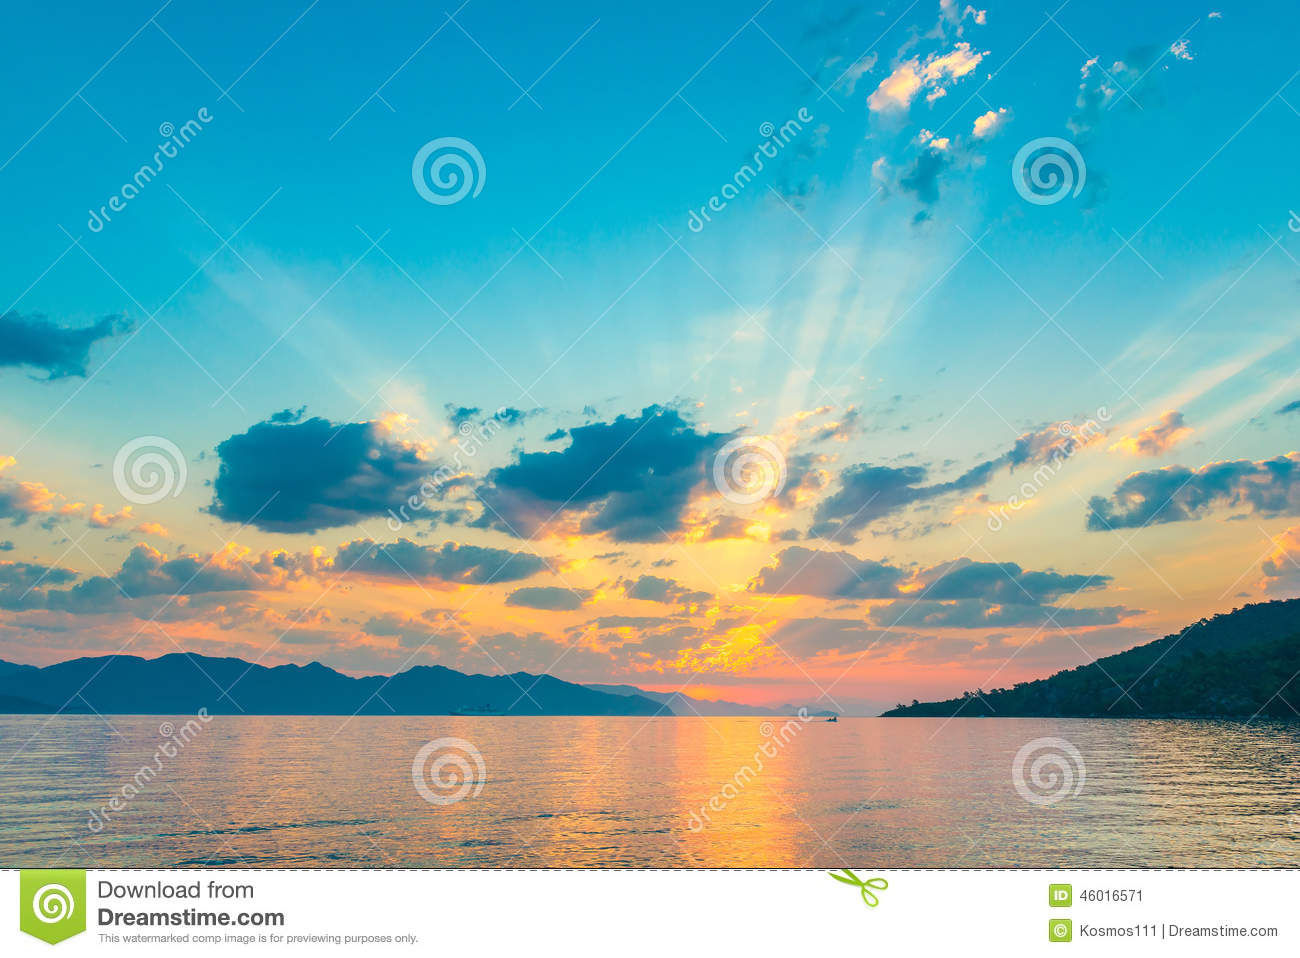 Very beautiful sky in the rays of the rising sun